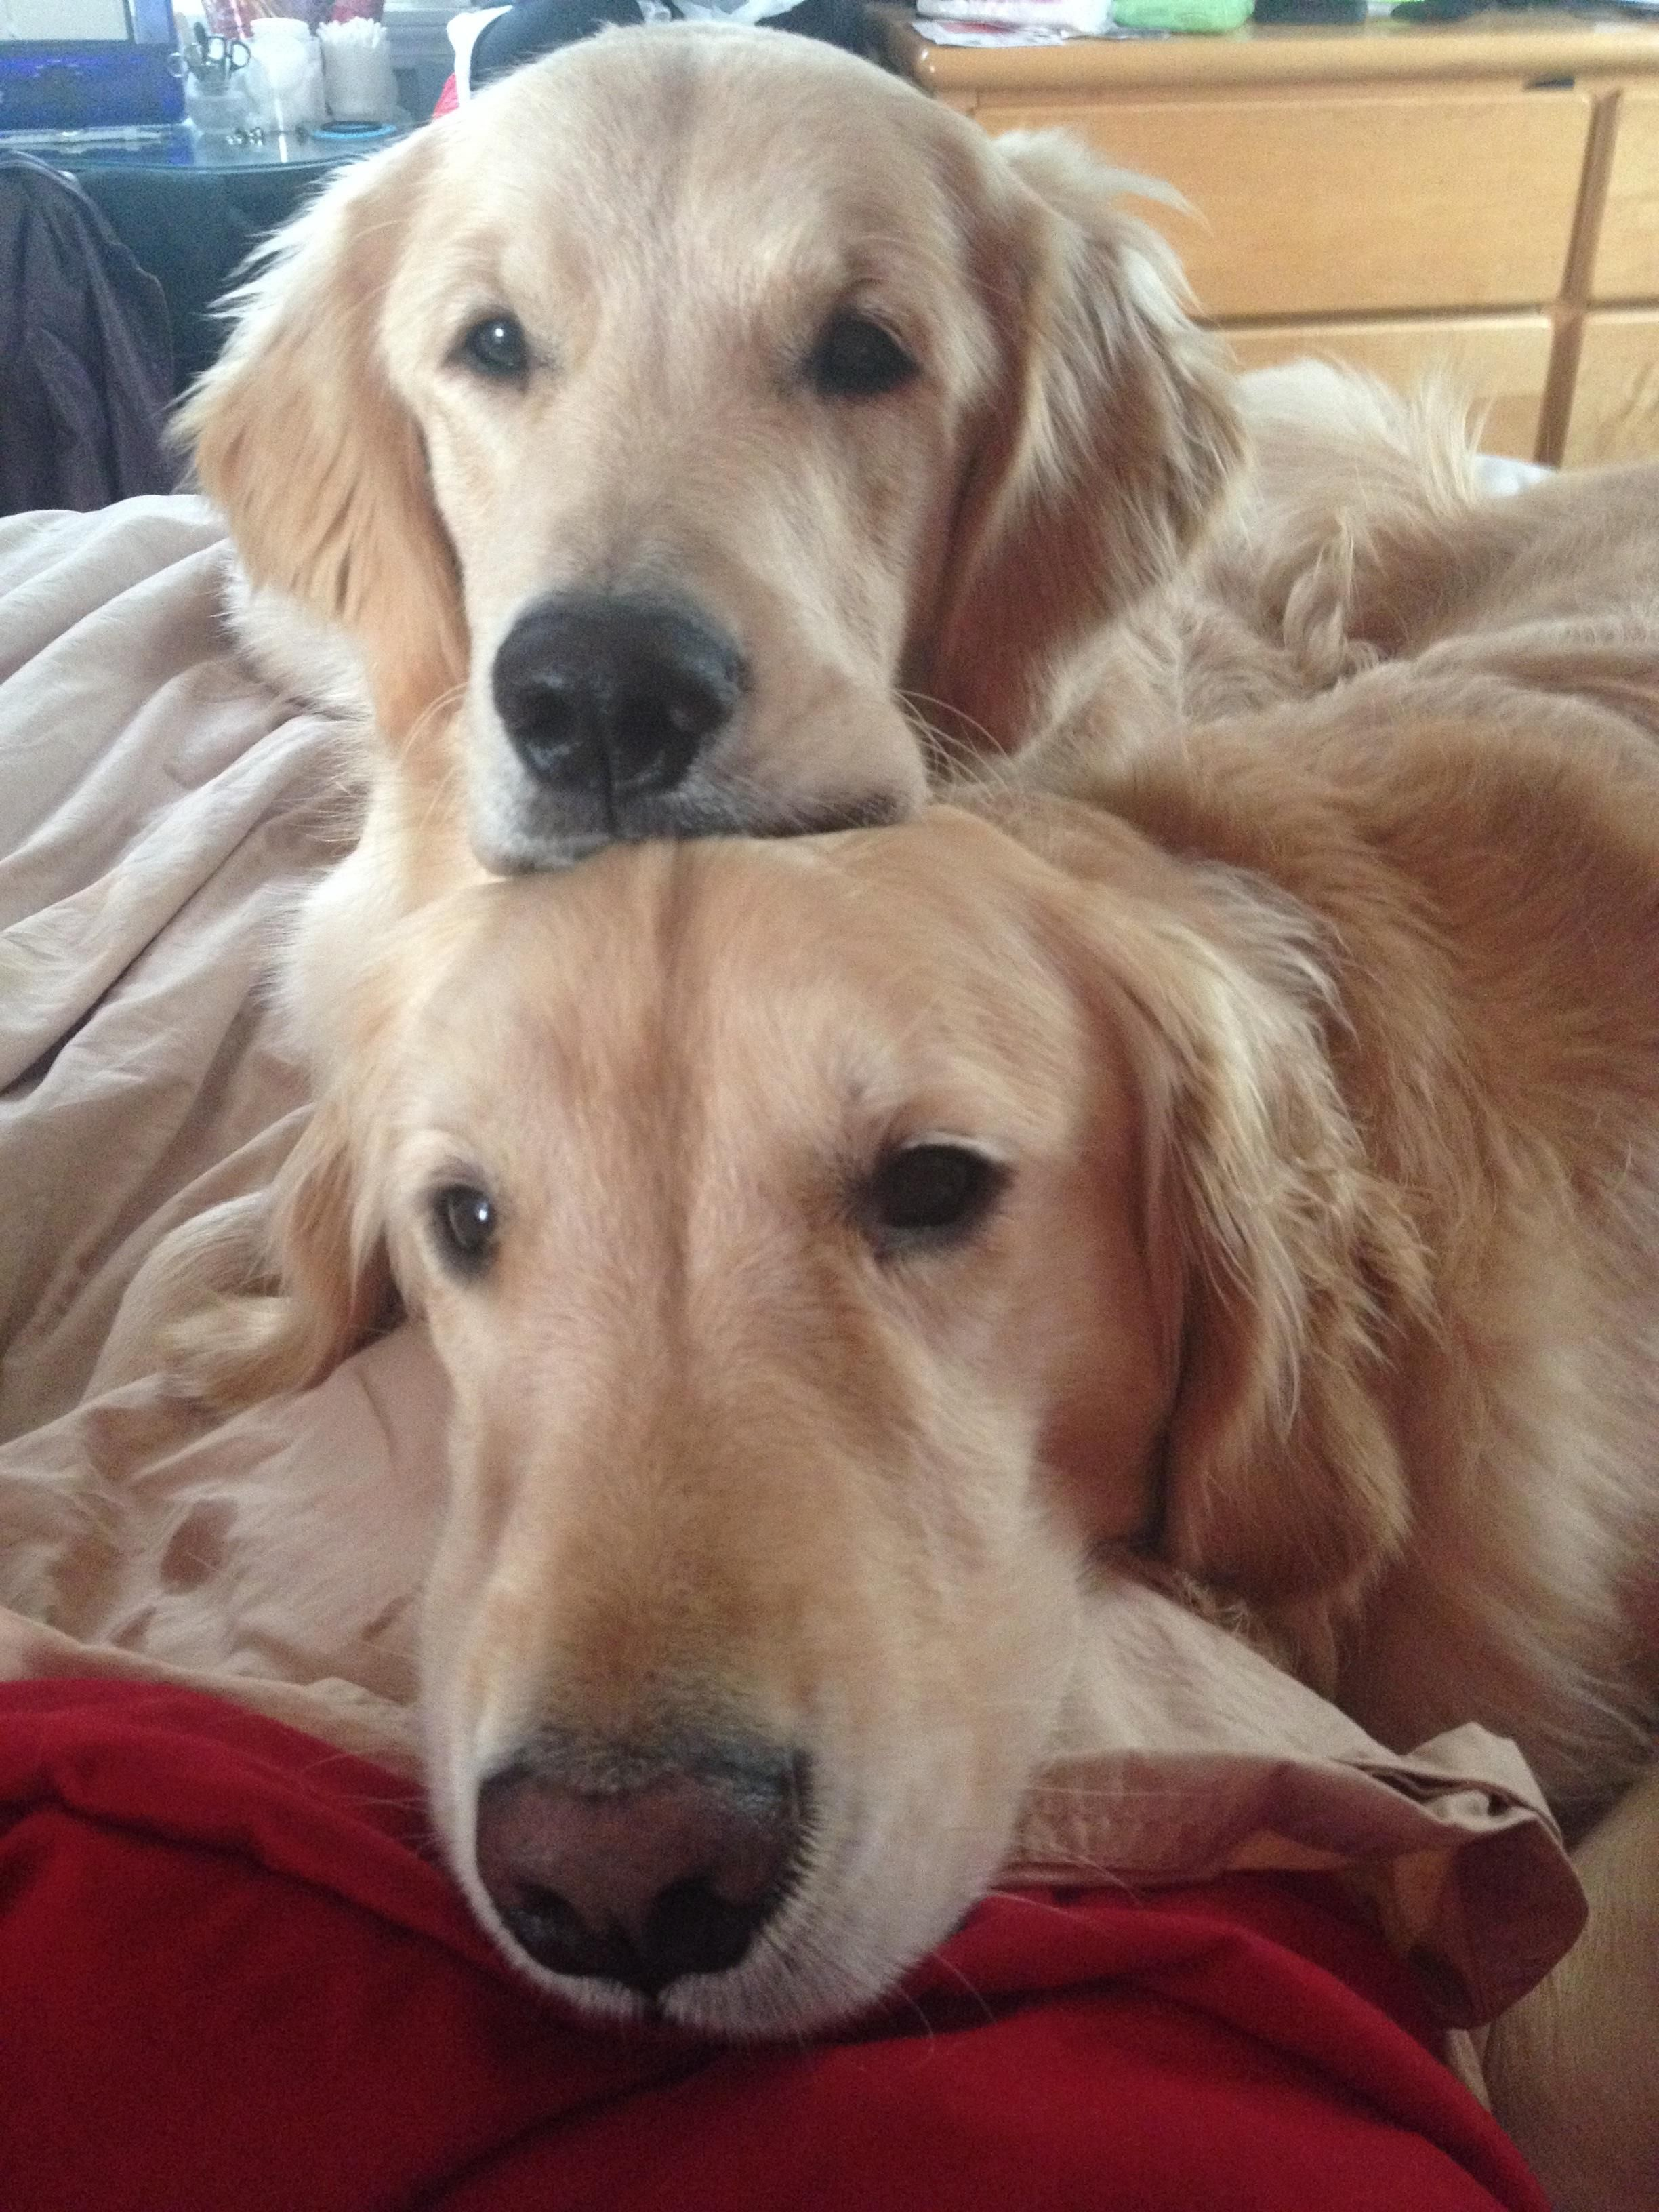 My Girlfriend Sends Me A Lot Of Pics Now That She Has 2 Goldens